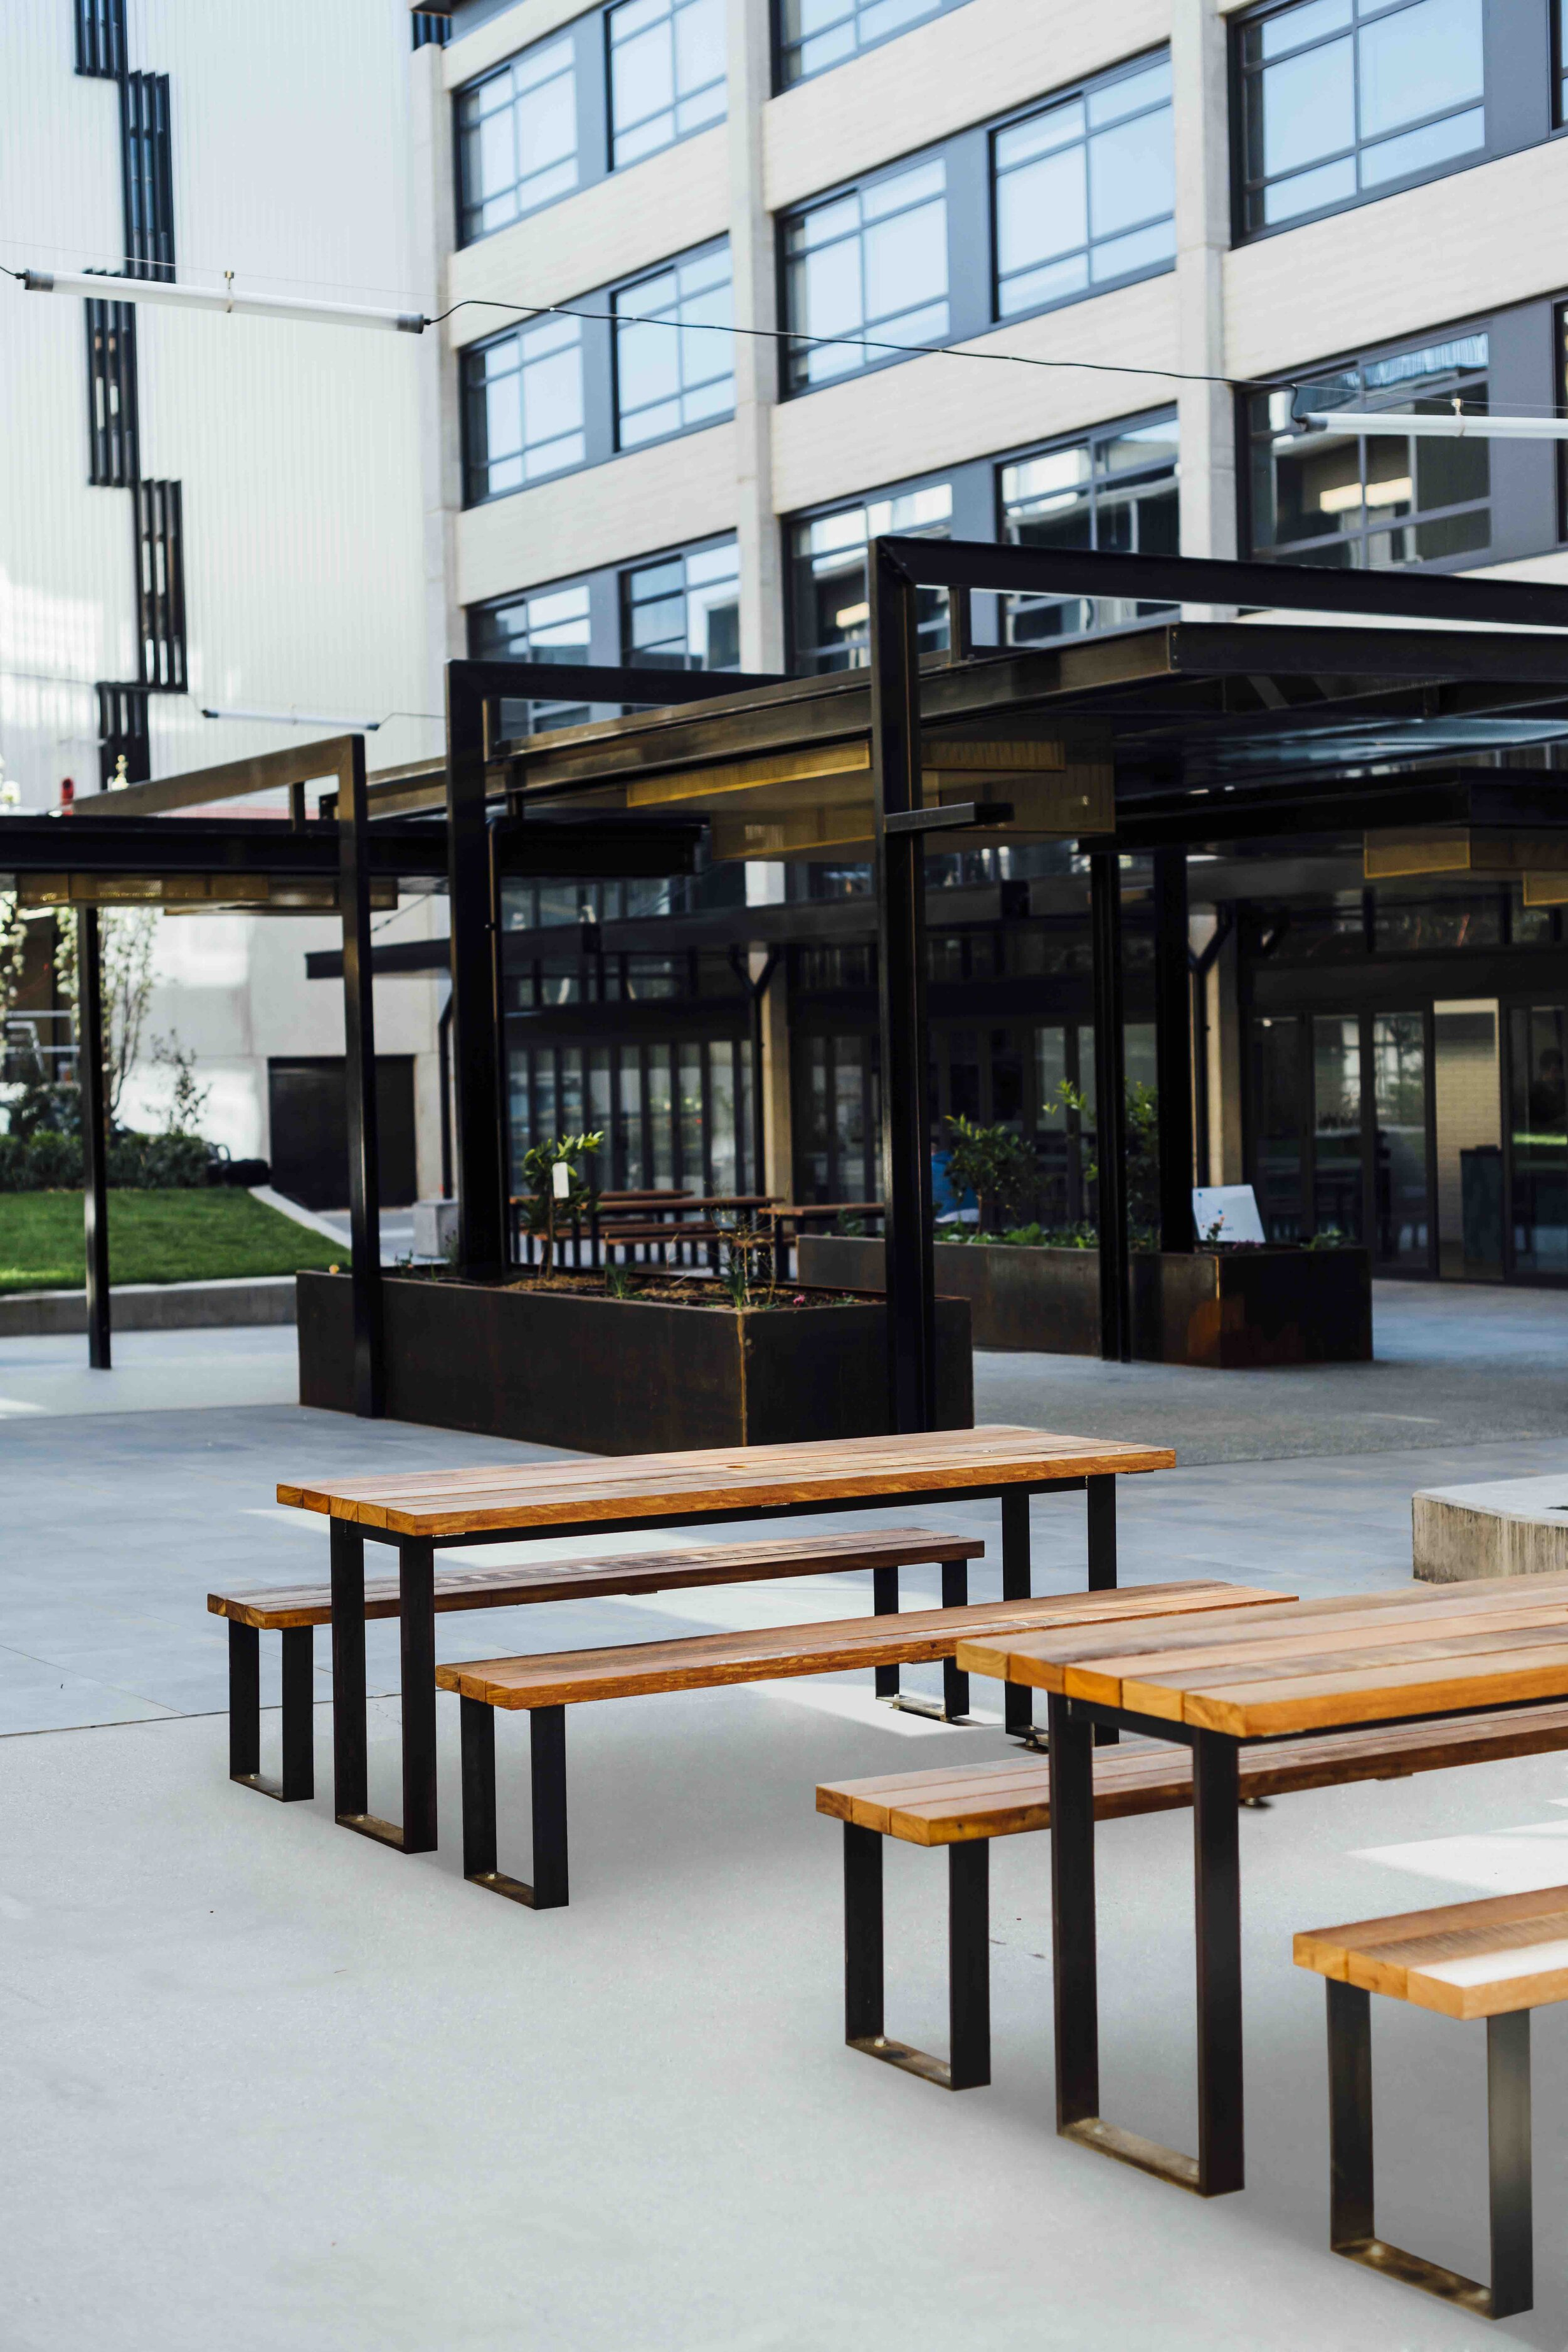 The recycled Ironbark tables installed at Kingsborough.